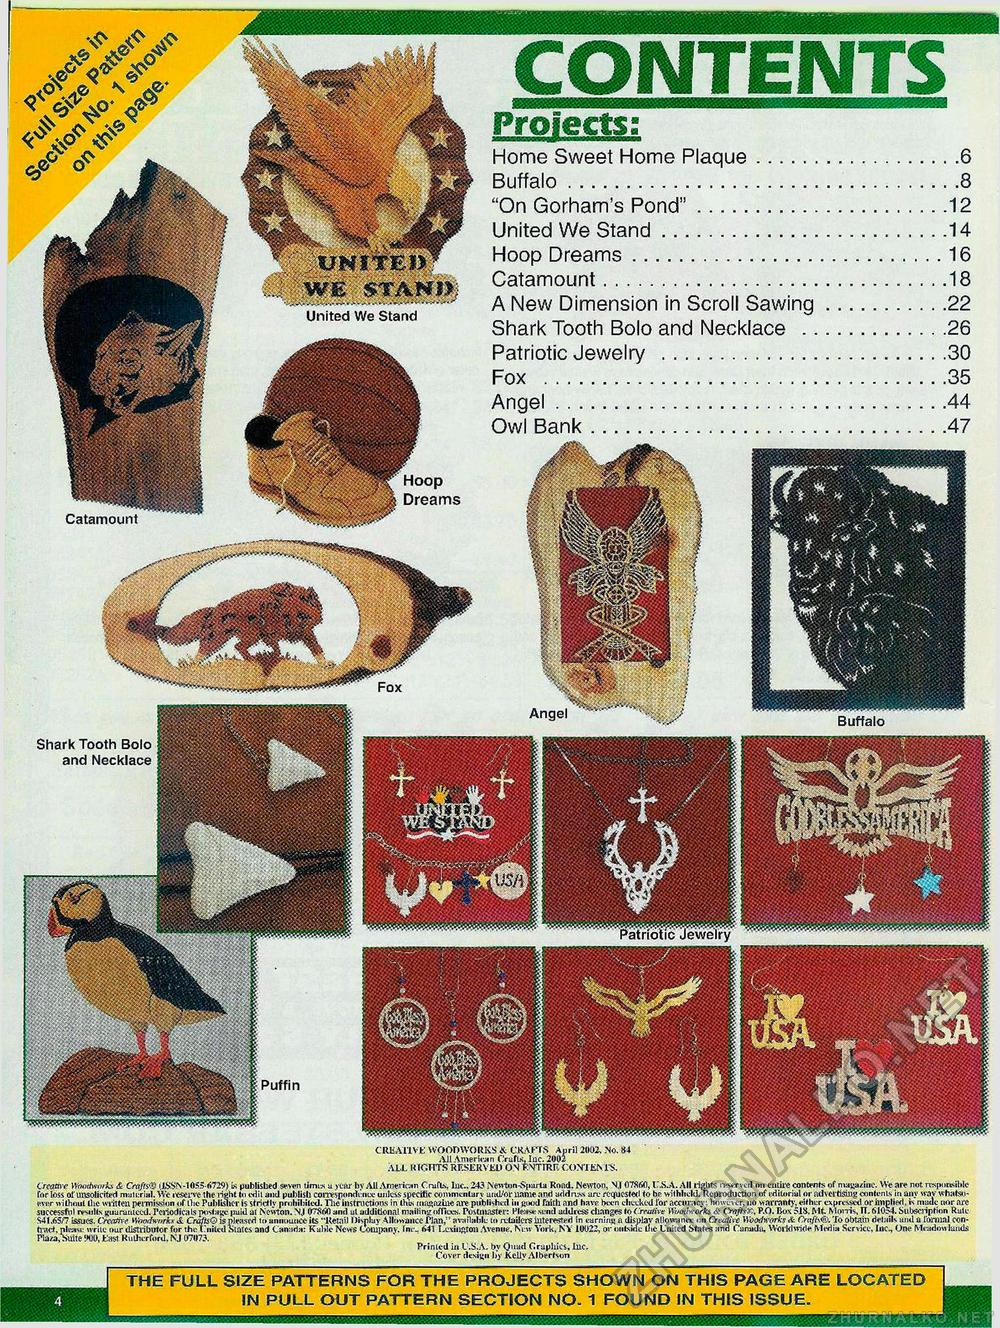 Creative Woodworks & crafts 2002-04, страница 4